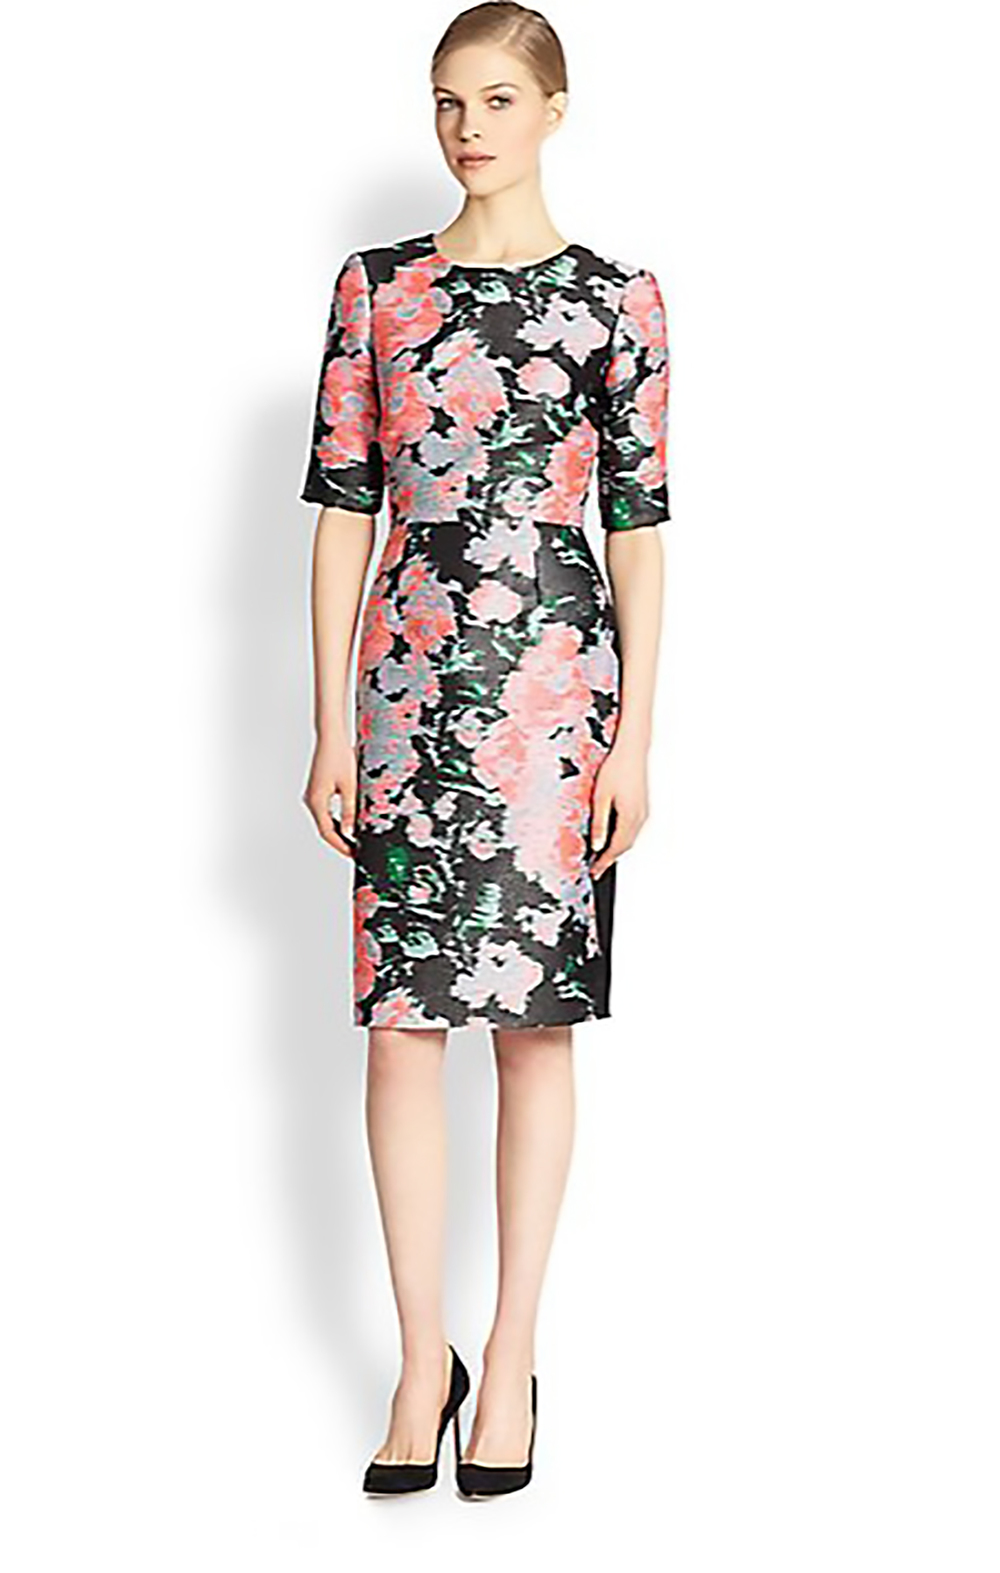 saks fifth avenue erdem floral jacquard dress winter florals 1500.jpg